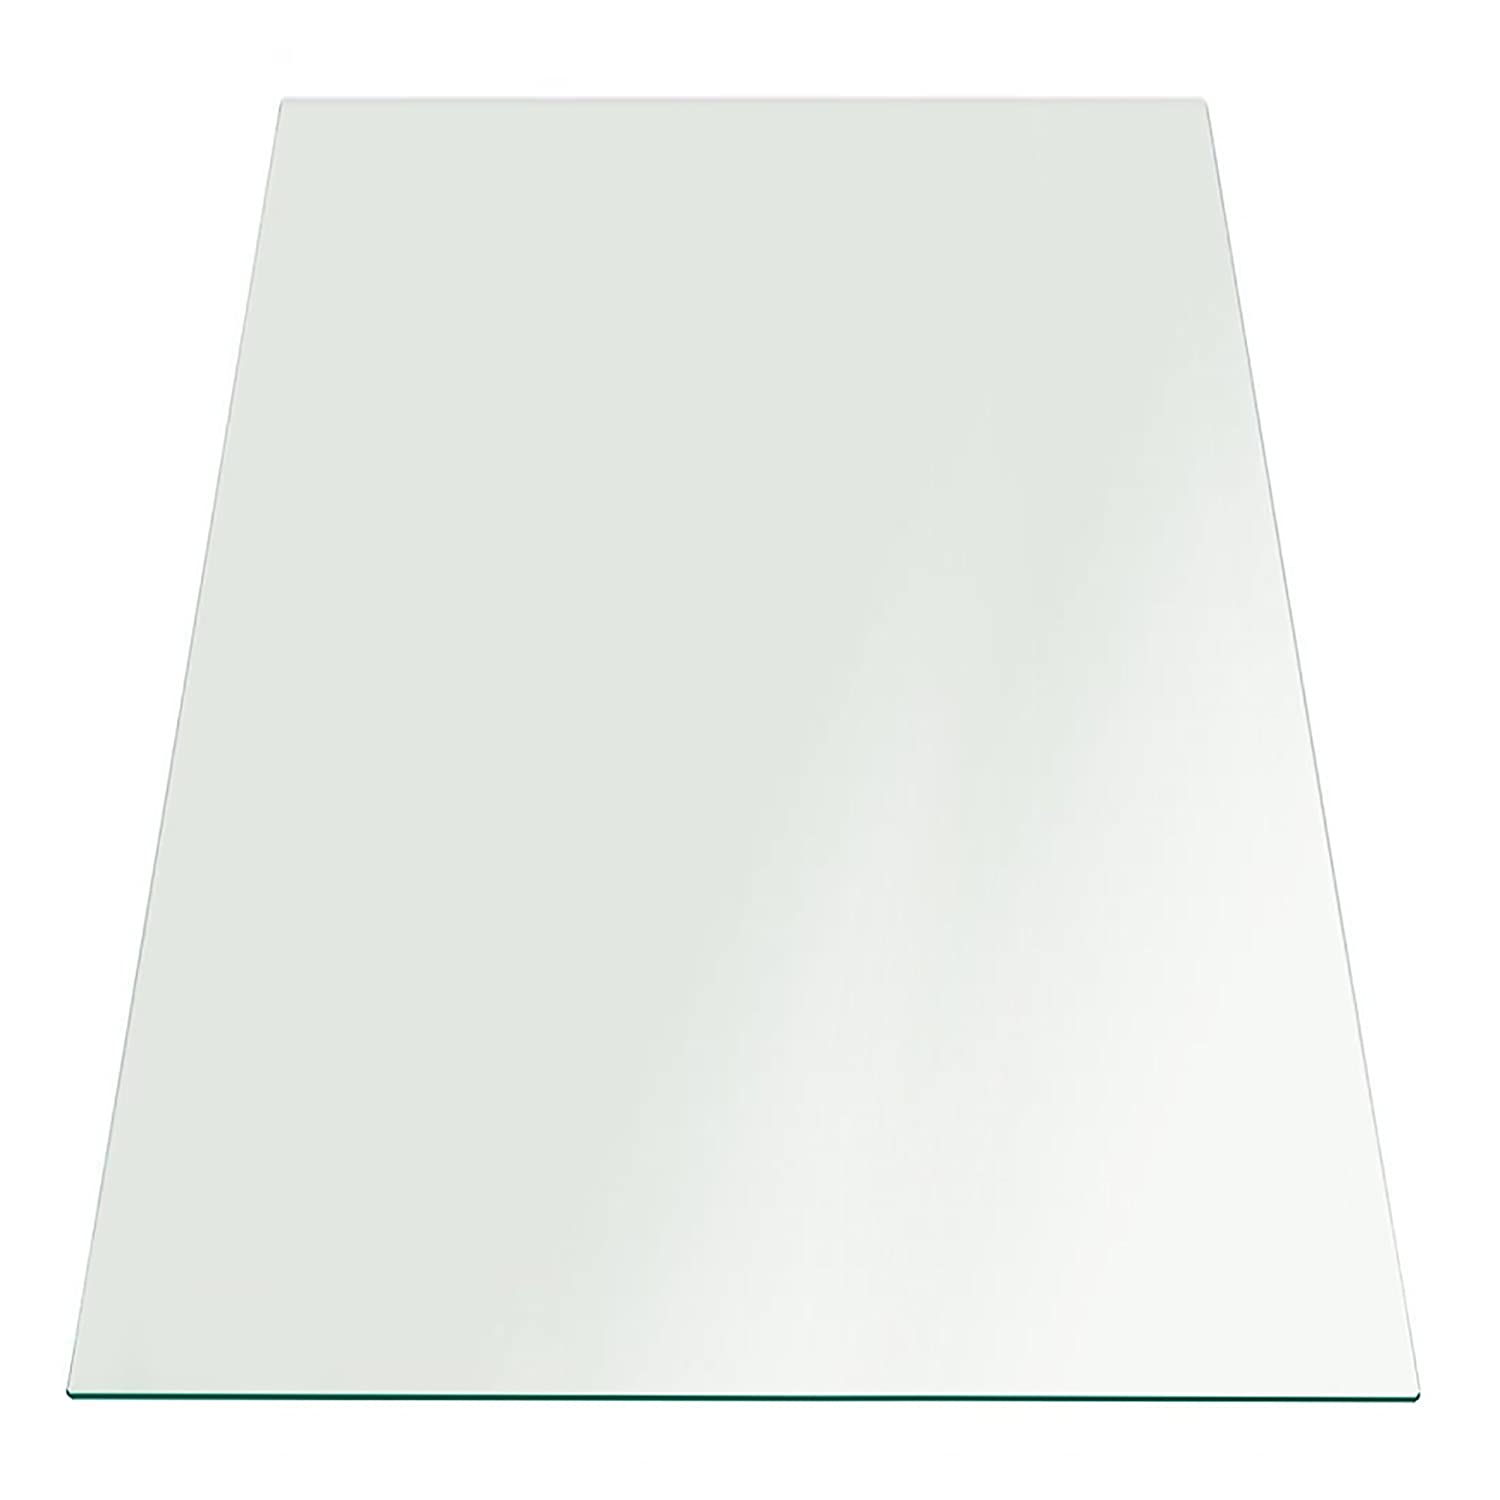 Fab Glass and Mirror 1/4 Thick Flat Edge Tempered Eased Corners Rectangle Glass Table Top, 30 X 60 30 X 60 30x60RECT6THFLTE-T